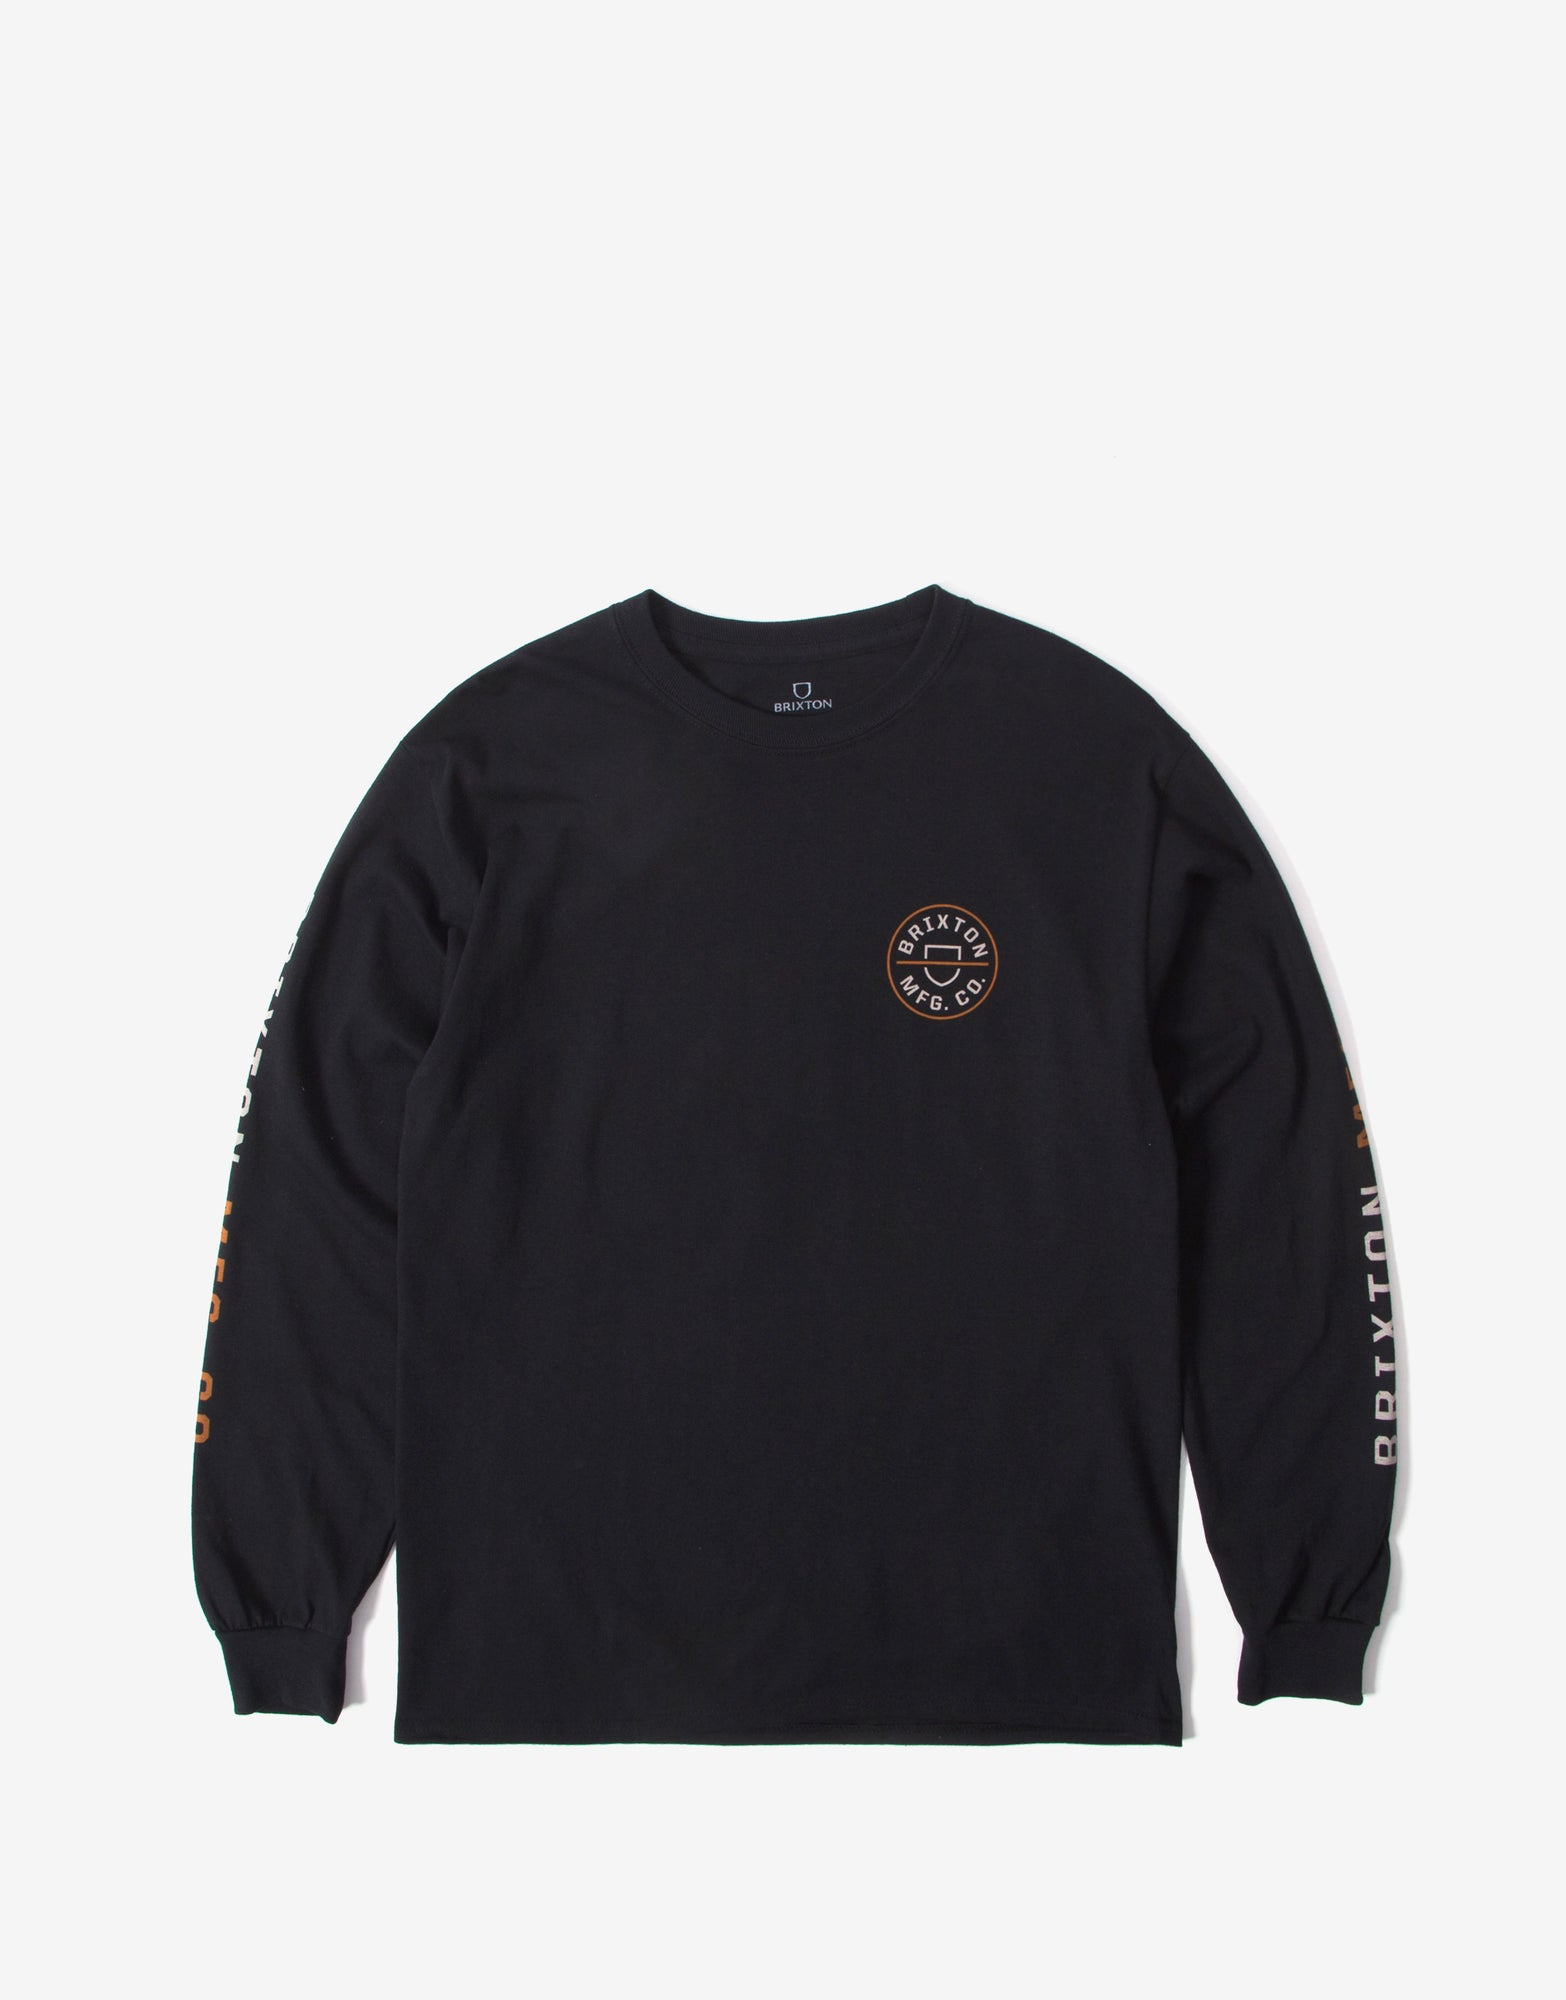 Brixton Crest Long Sleeve T Shirt - Black/Vanilla